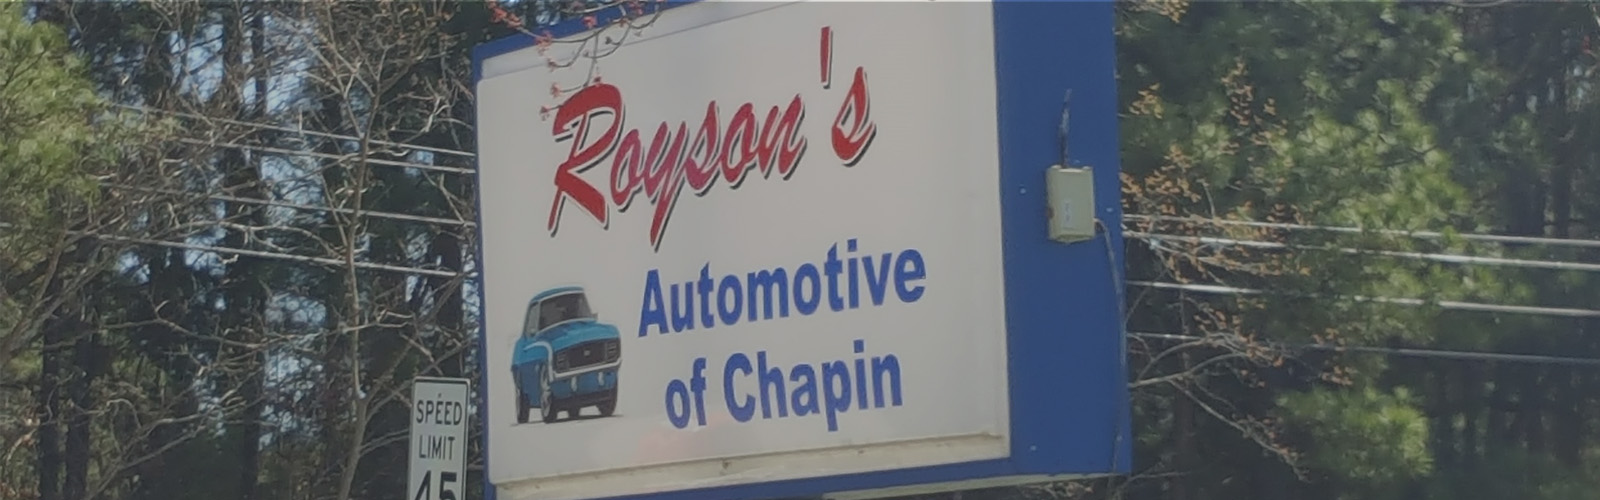 Royson's Automotive of Chapin